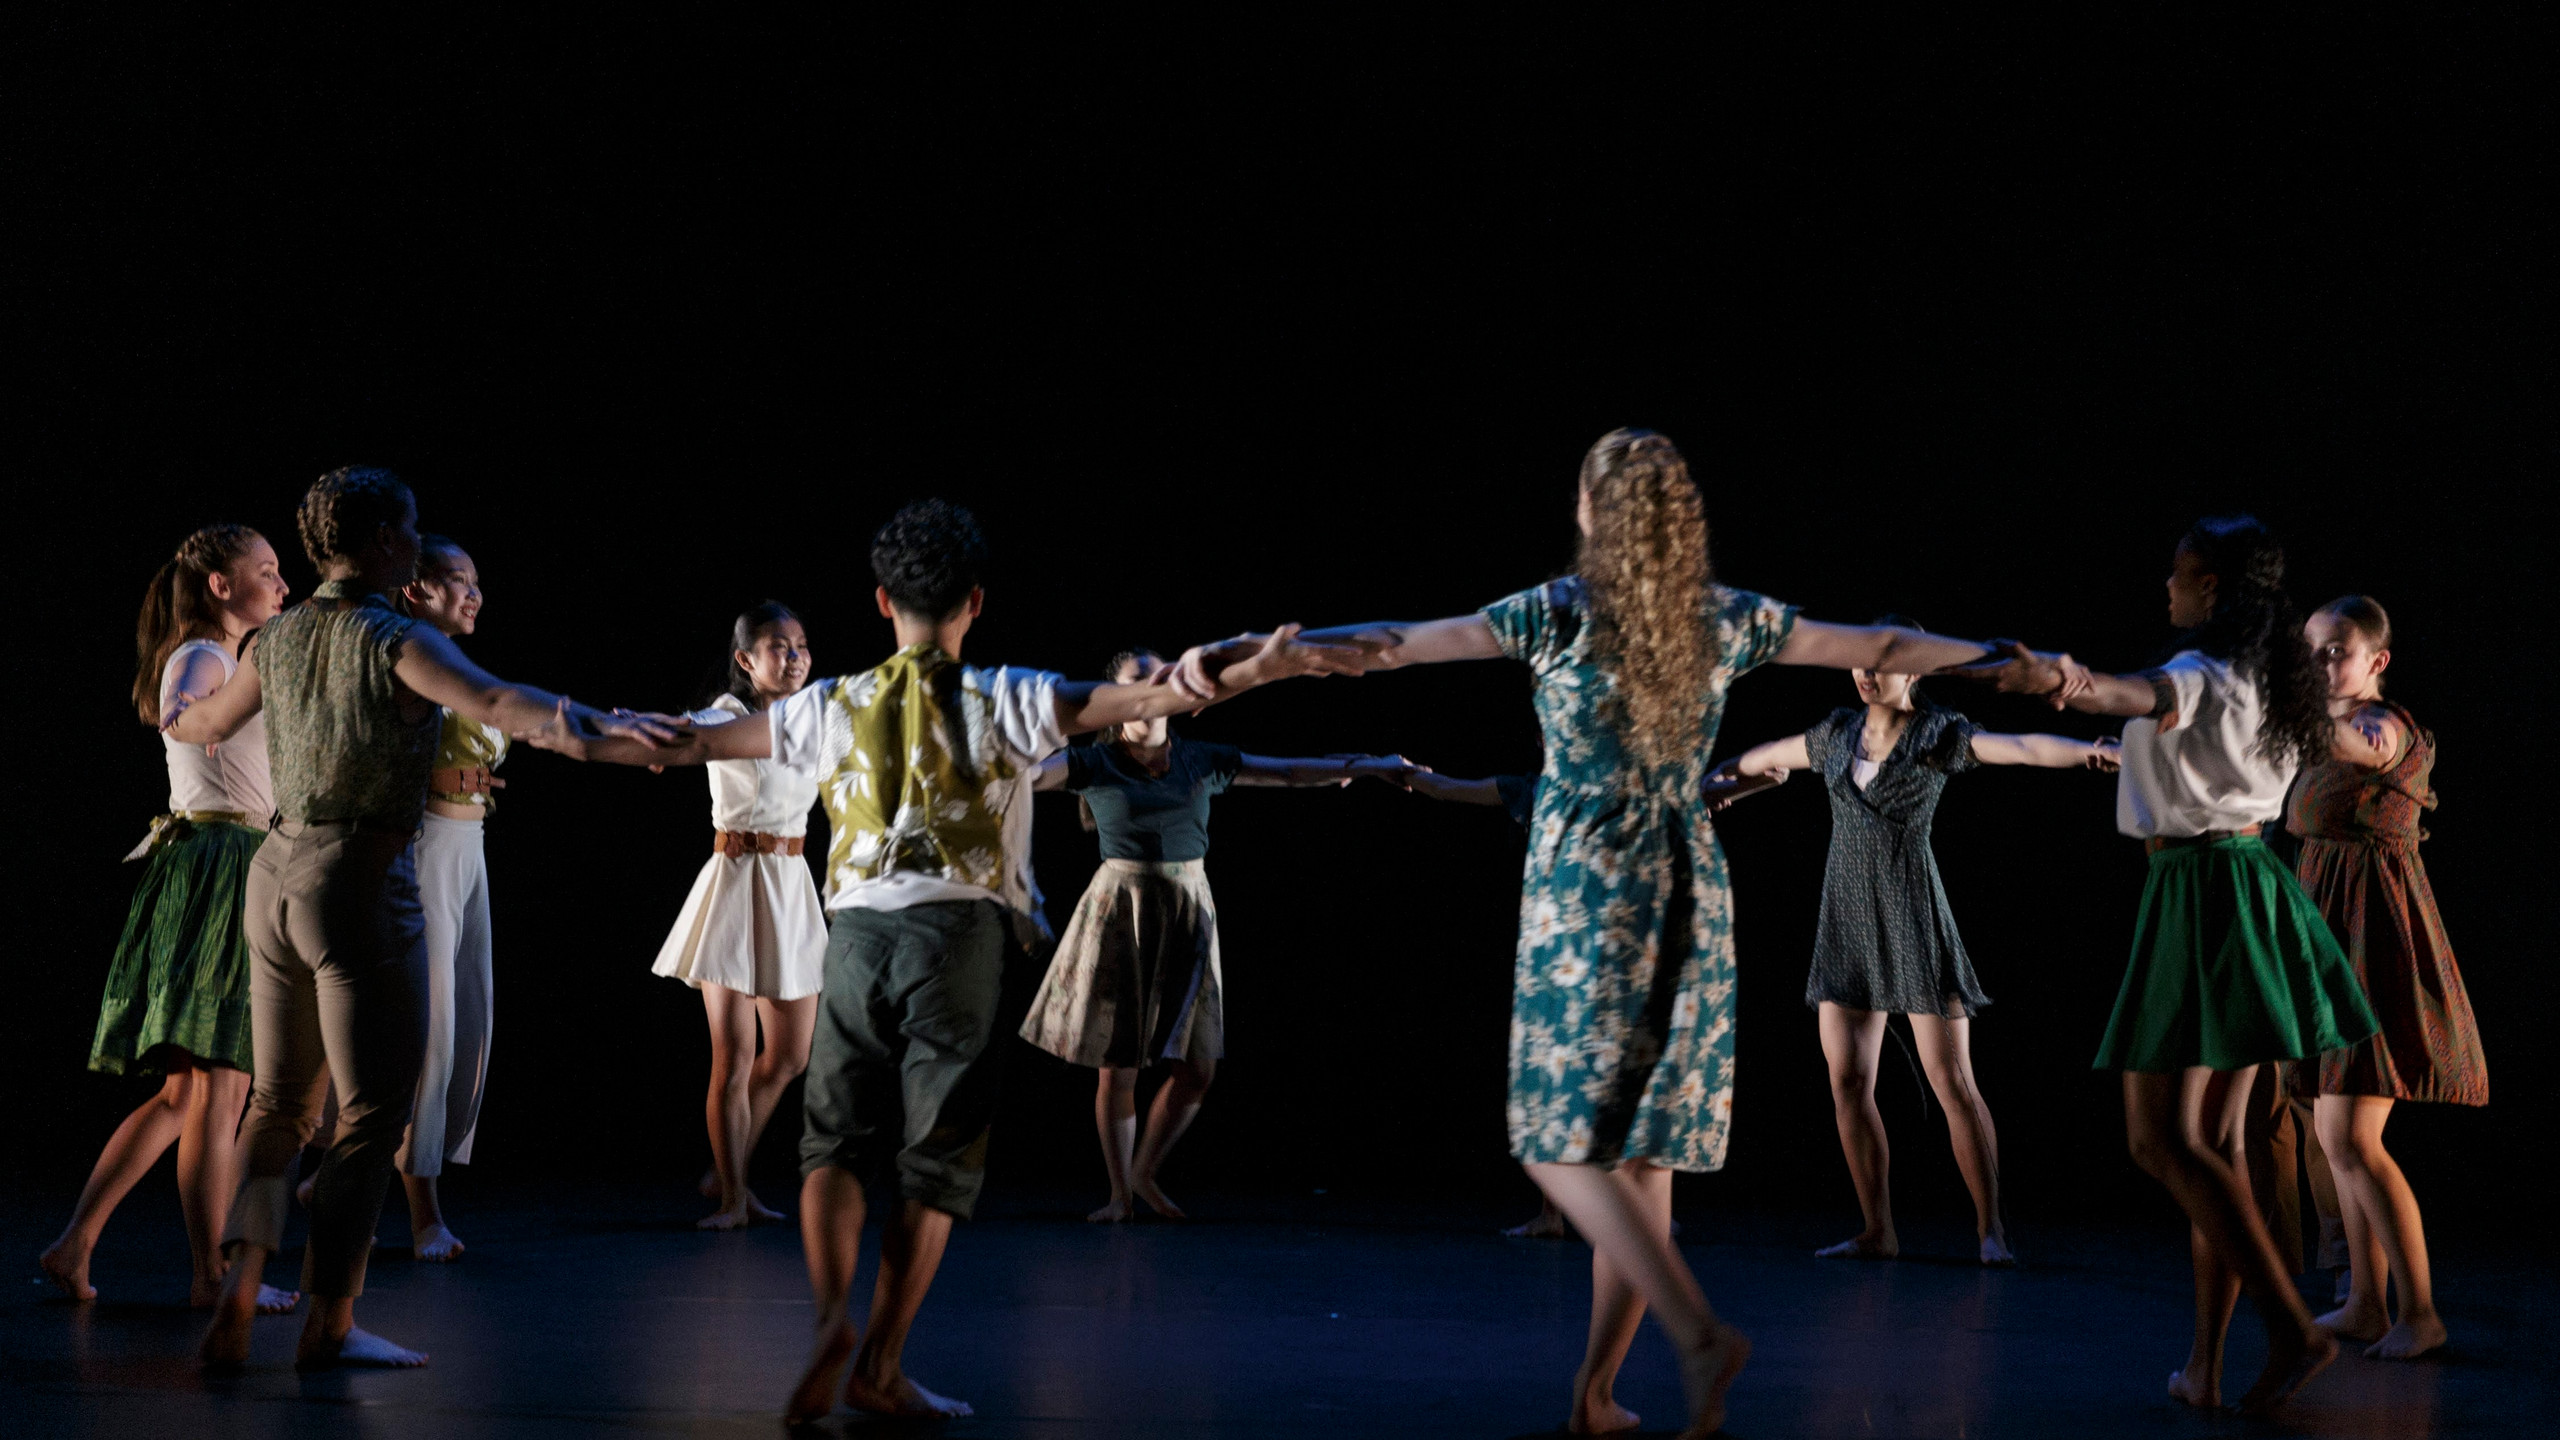 The artists of CCDT in 'A Day of Light' Choreography by Hanna Kiel